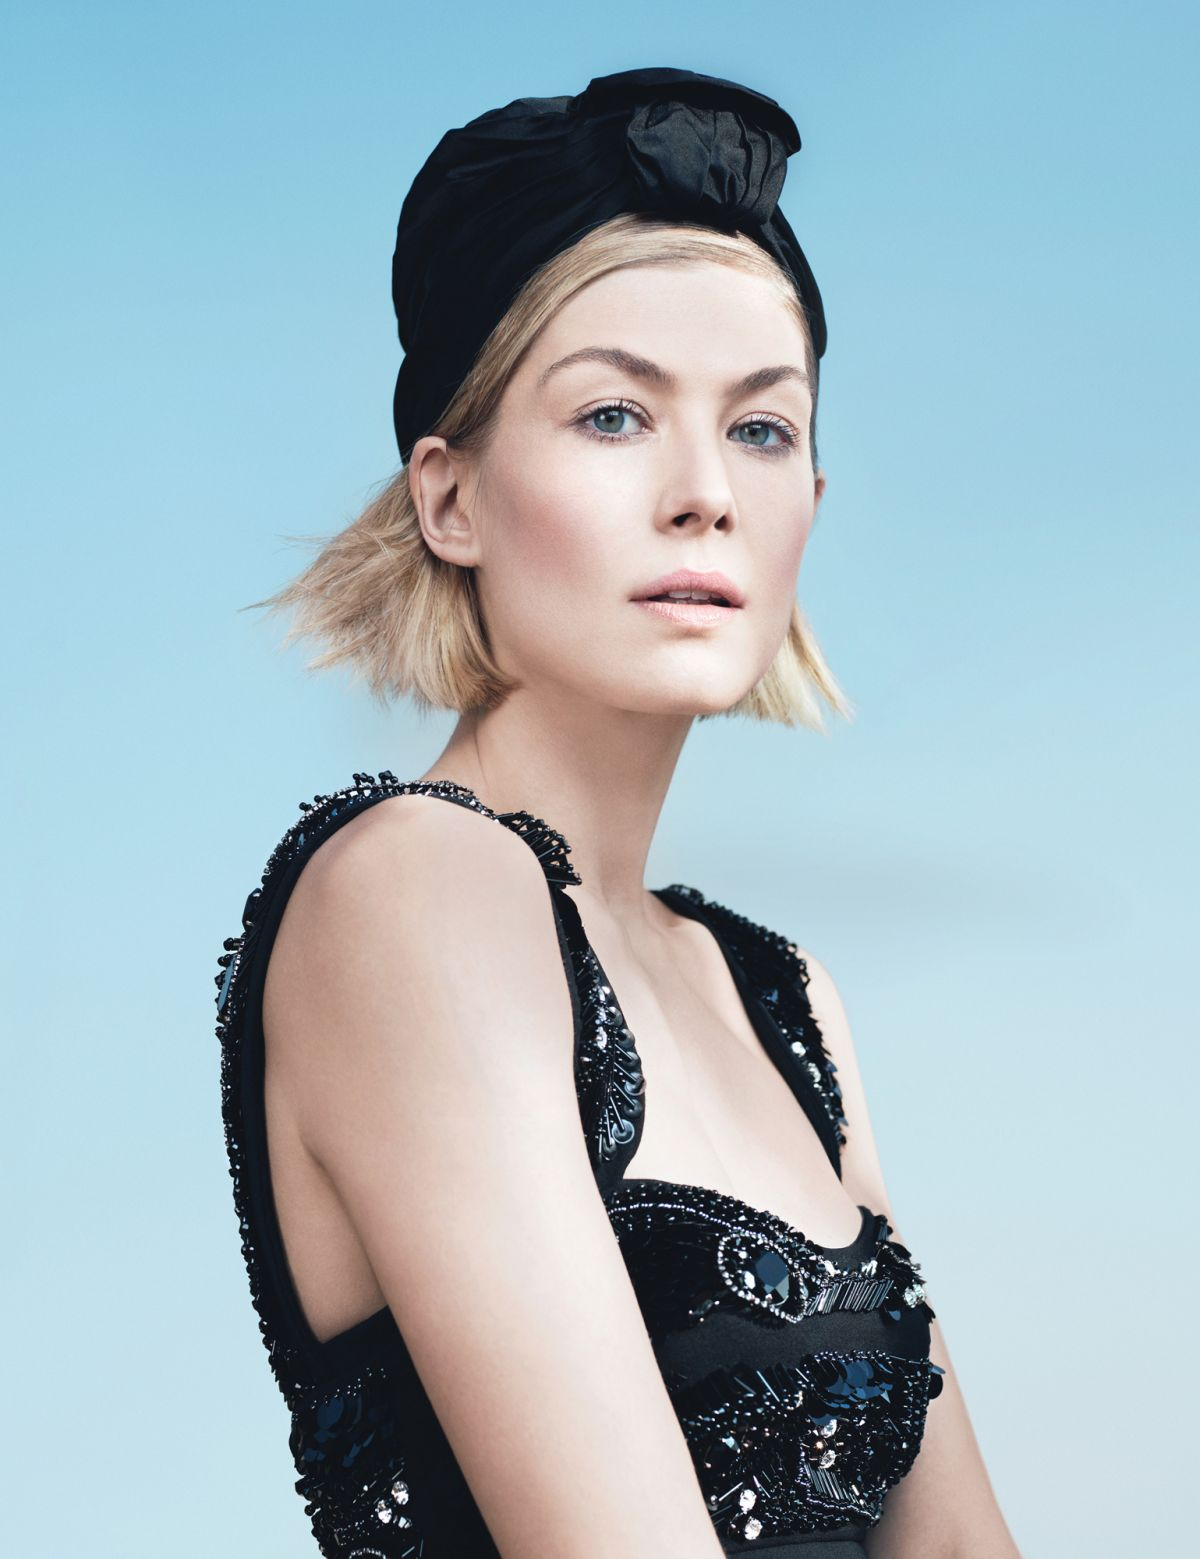 ROSAMUND PIKE in W Magazine, May 2014 Issue – HawtCelebsRosamund Pike 2014